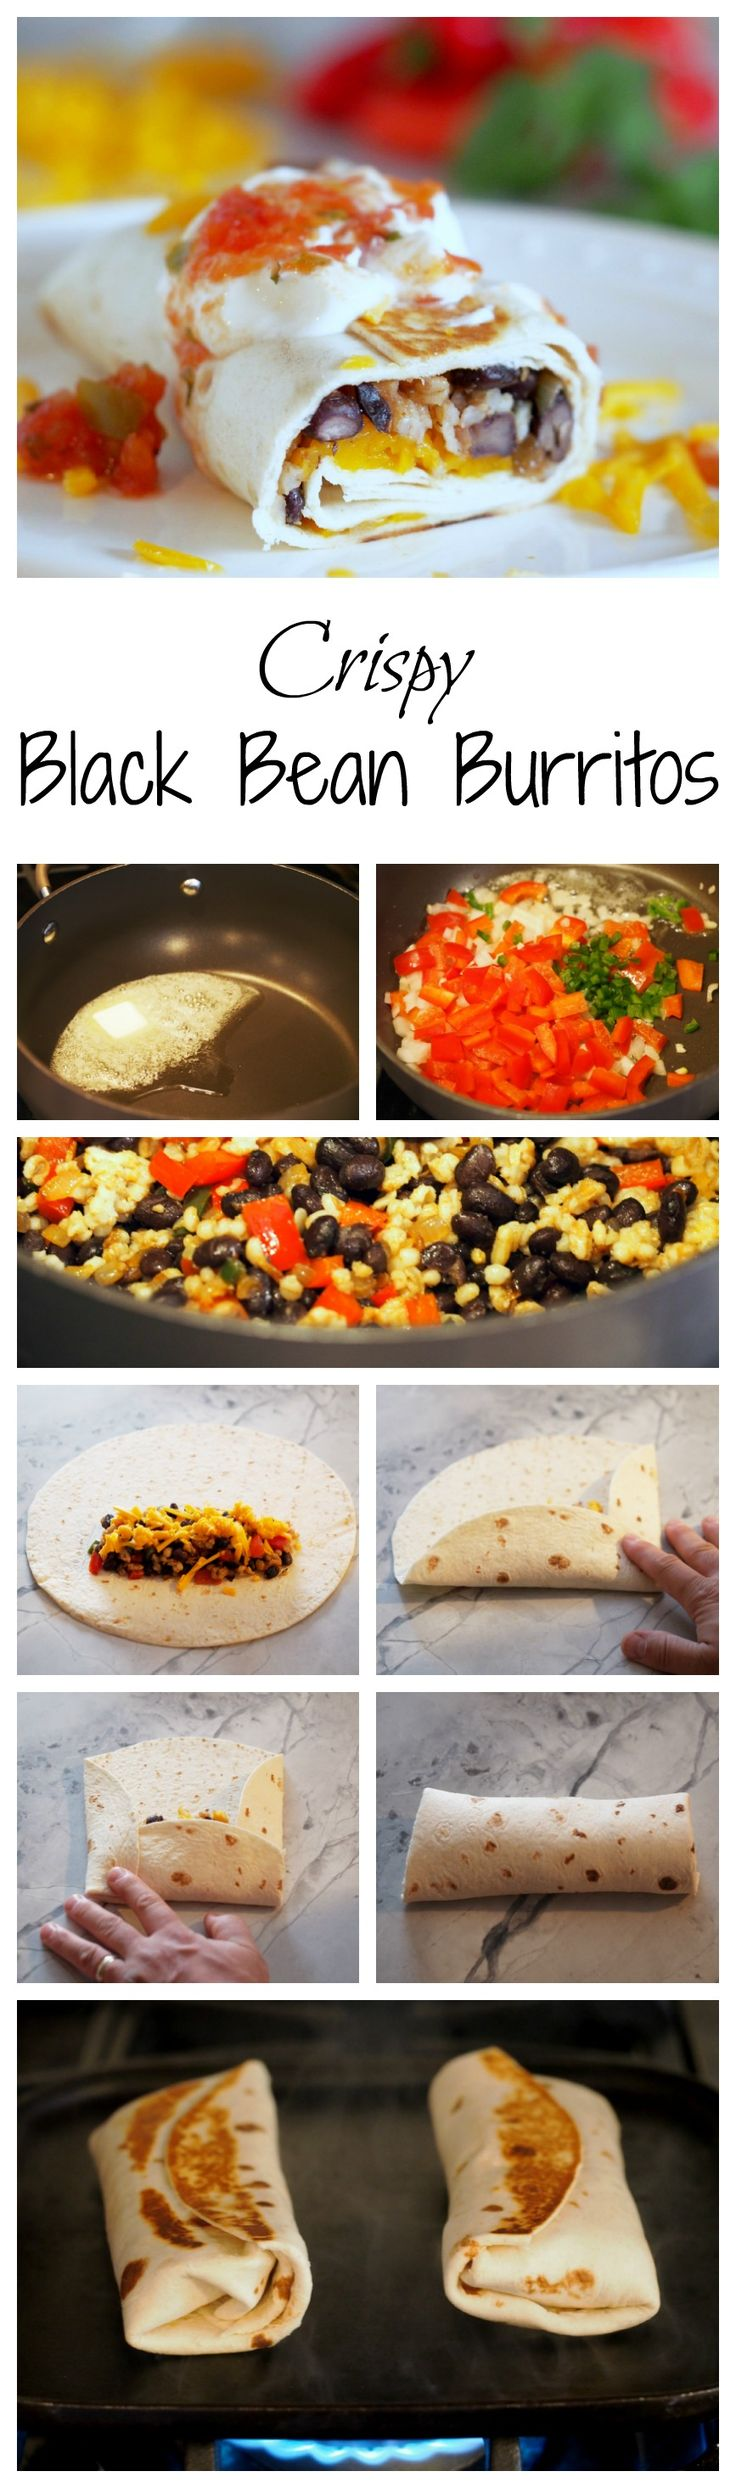 Crispy-Black-Bean-Burritos combine black beans with sautéed vegetables, brown rice, and cheddar cheese for a healthy, balanced vegetarian meal with complete proteins, all wrapped in a toasted tortilla. Veganize by leaving out the butter, using vegan cheese and choosing vegan garnishes/accompaniments.